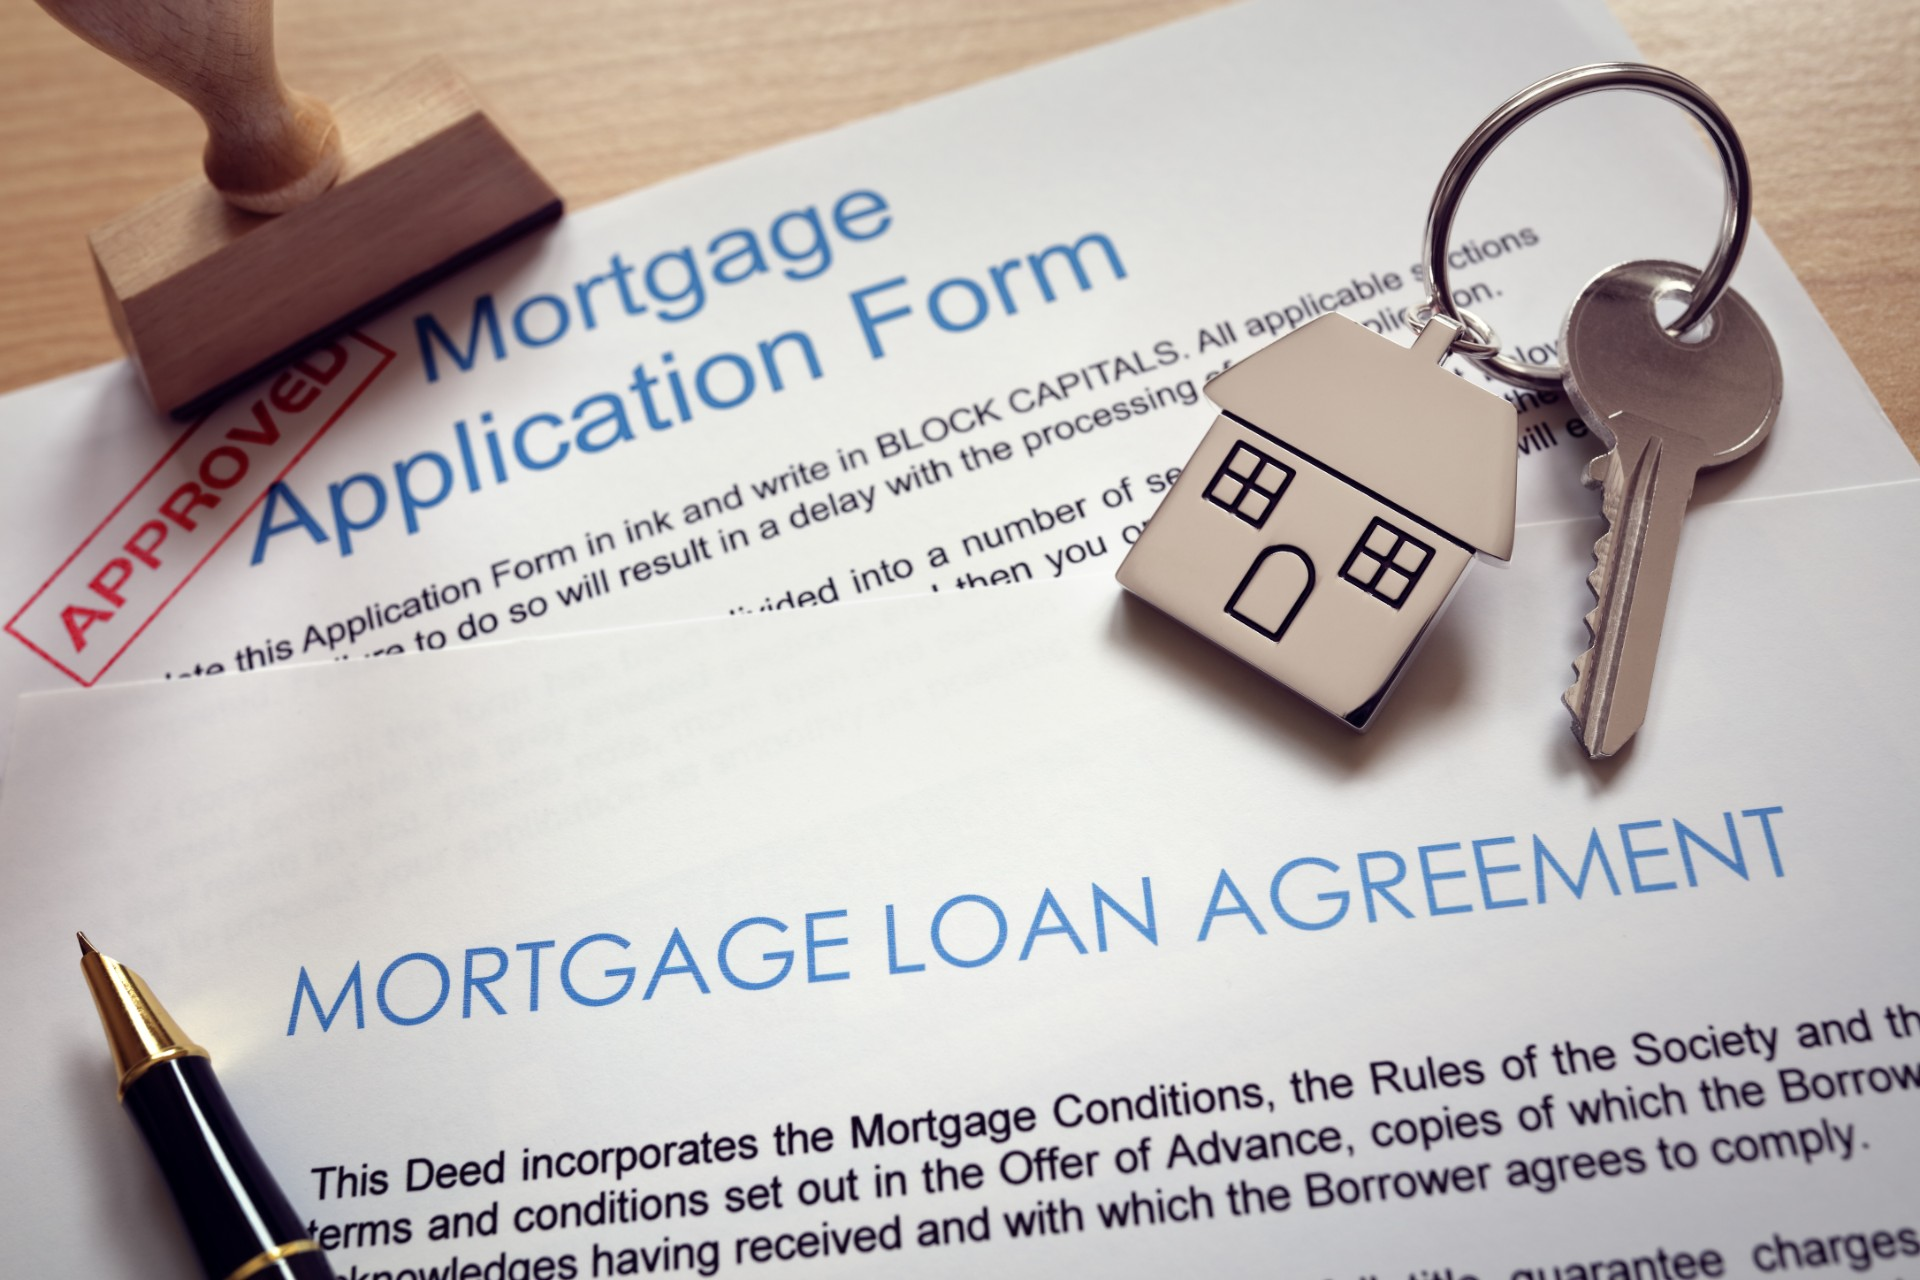 How to Eliminate Bad Credit Habits That Can Reduce Your Chances of Getting a Mortgage Loan Approval